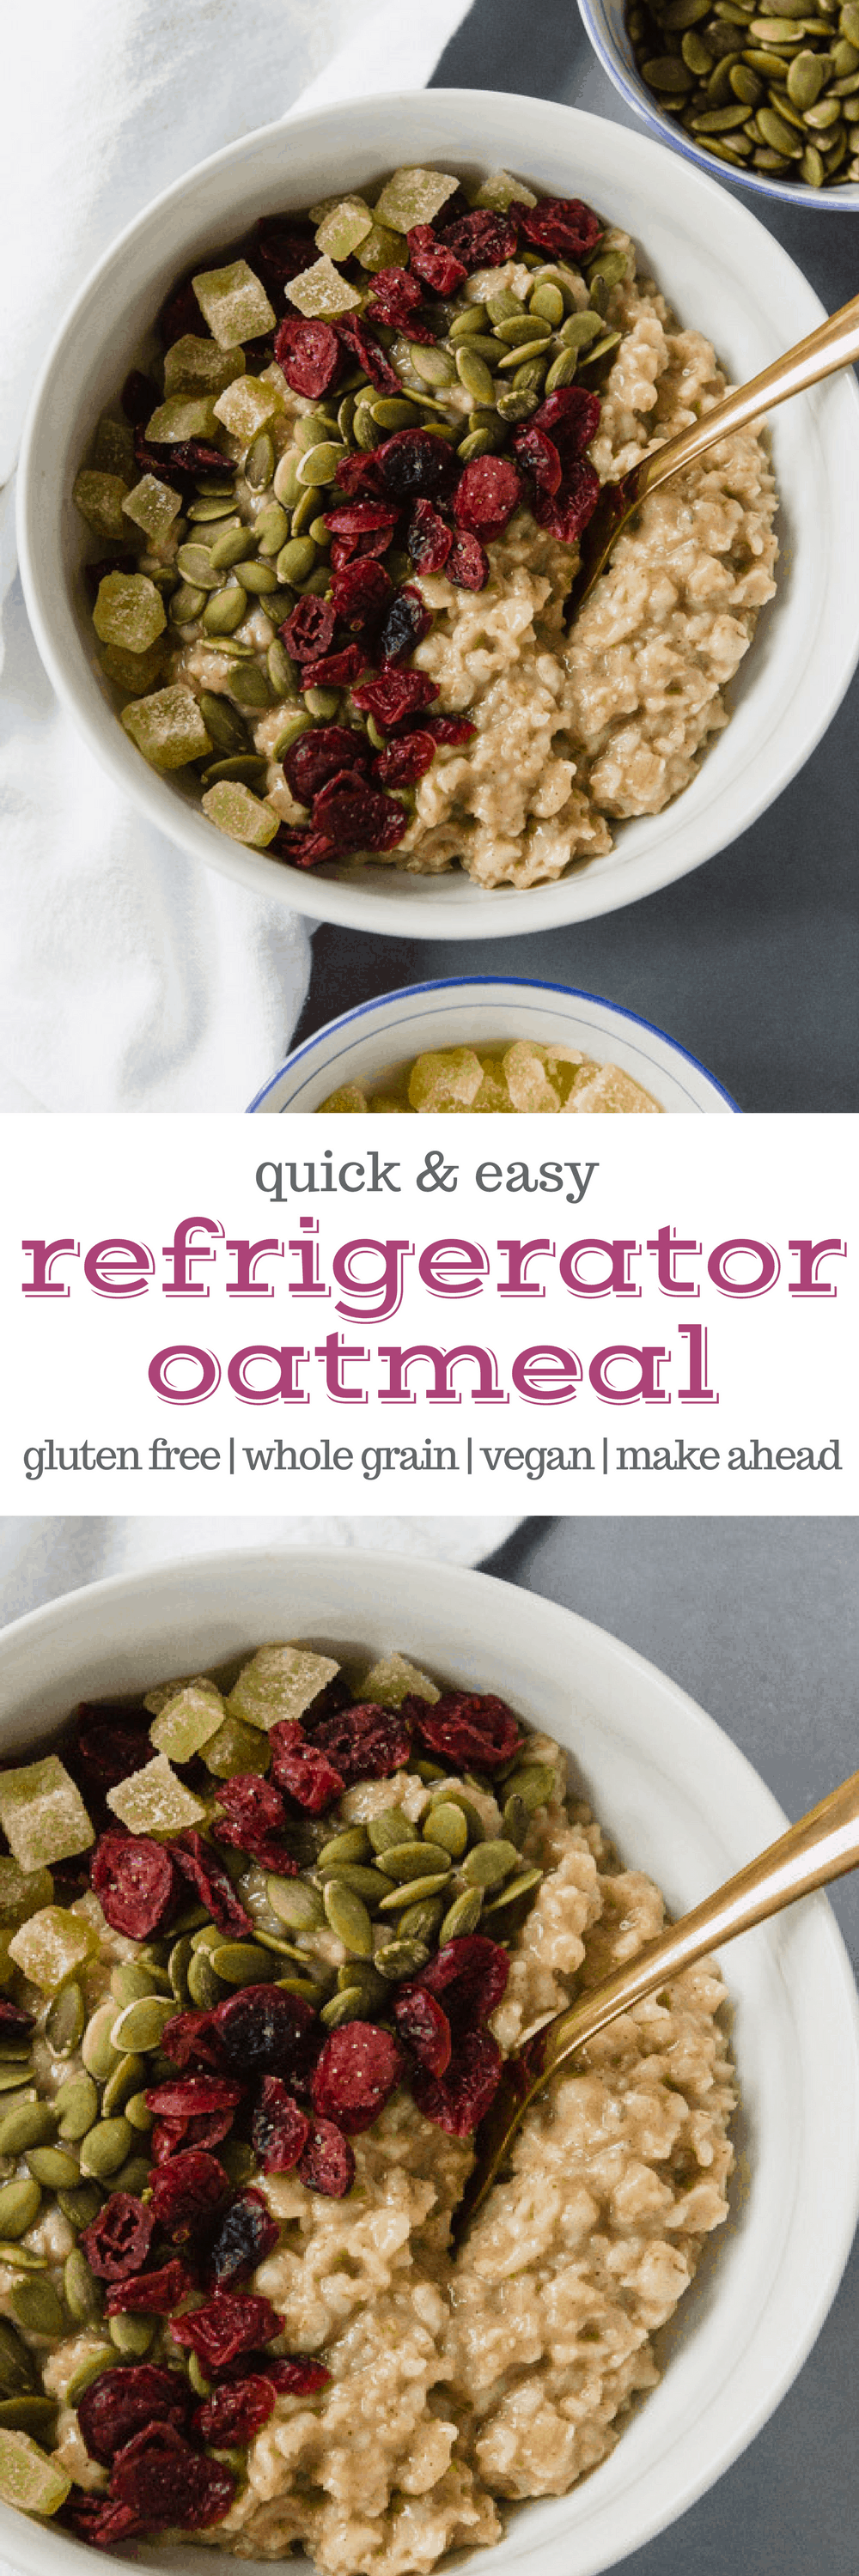 Add this refrigerator oatmeal to your breakfast rotation! It's a make-ahead batch cooking recipe that finishes up in the fridge while it waits for you. Plus, it's vegan and gluten free - but don't forget to use certified gluten free oats! #glutenfree #breakfast #recipe #oatmeal #makeahead #mealprep #batchcooking #overnightoats